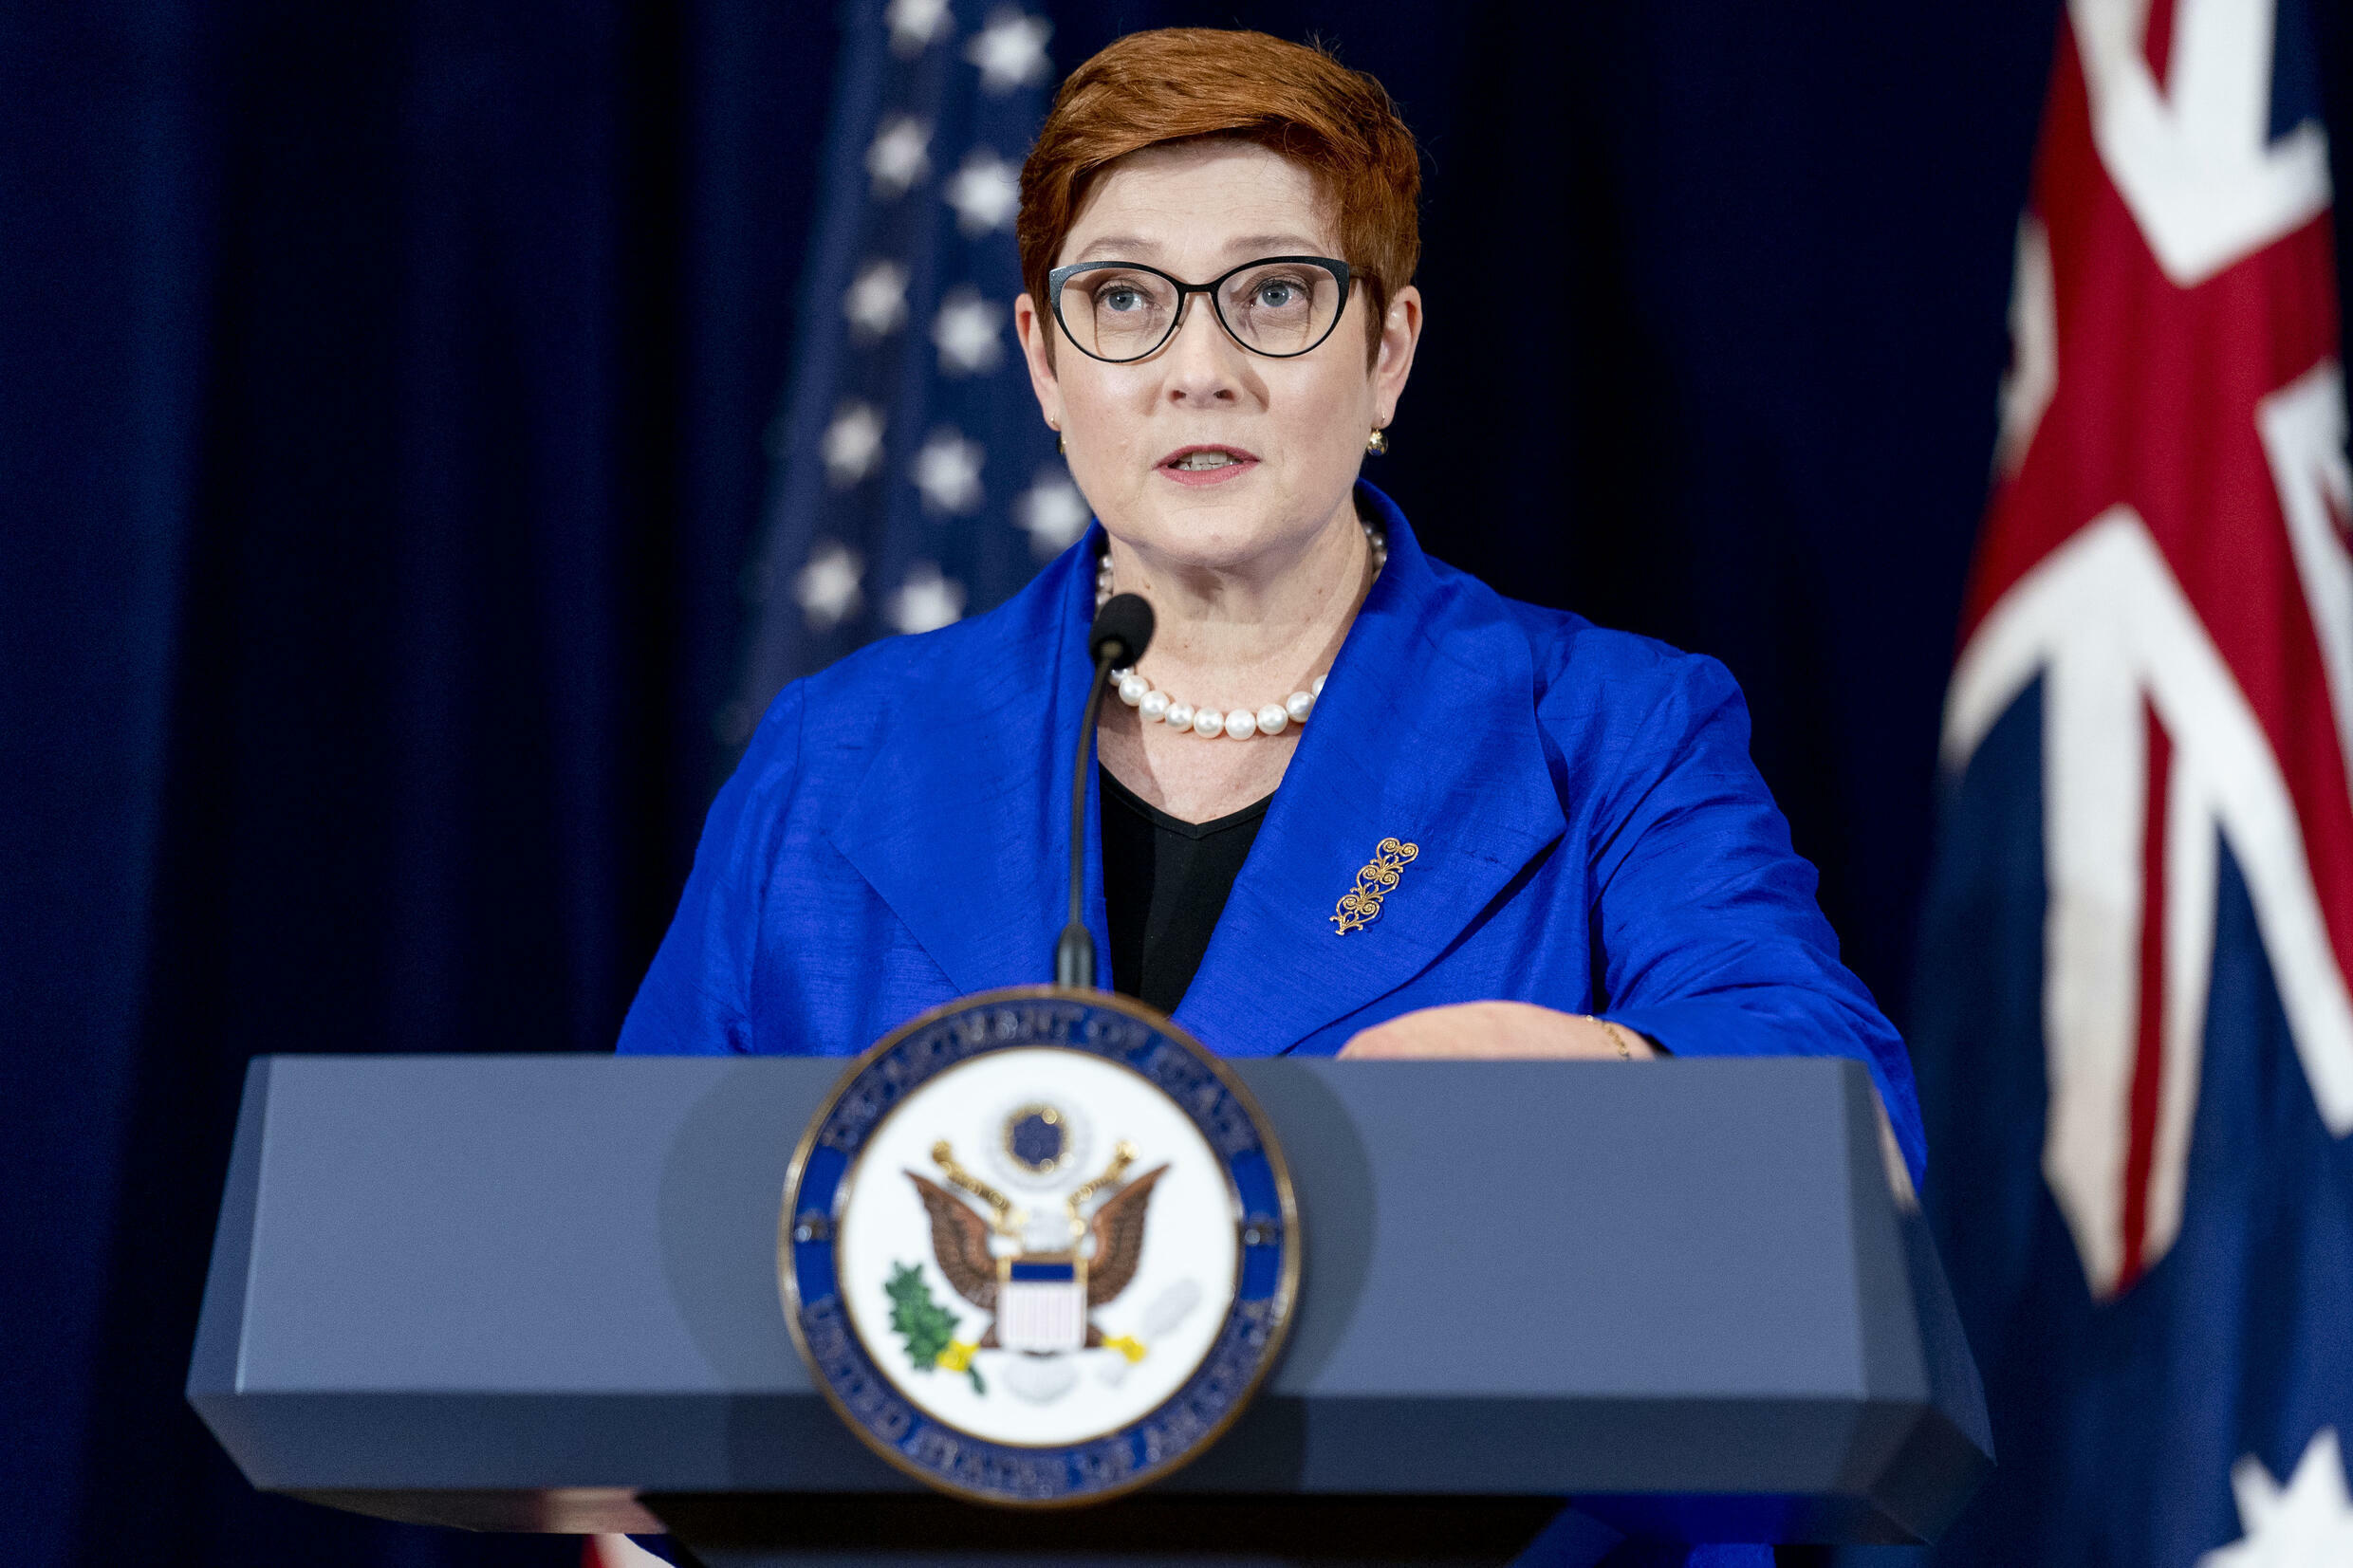 Australian Foreign Minister Marise Payne in Washington on Thursday said she understood France's 'dsappointment'